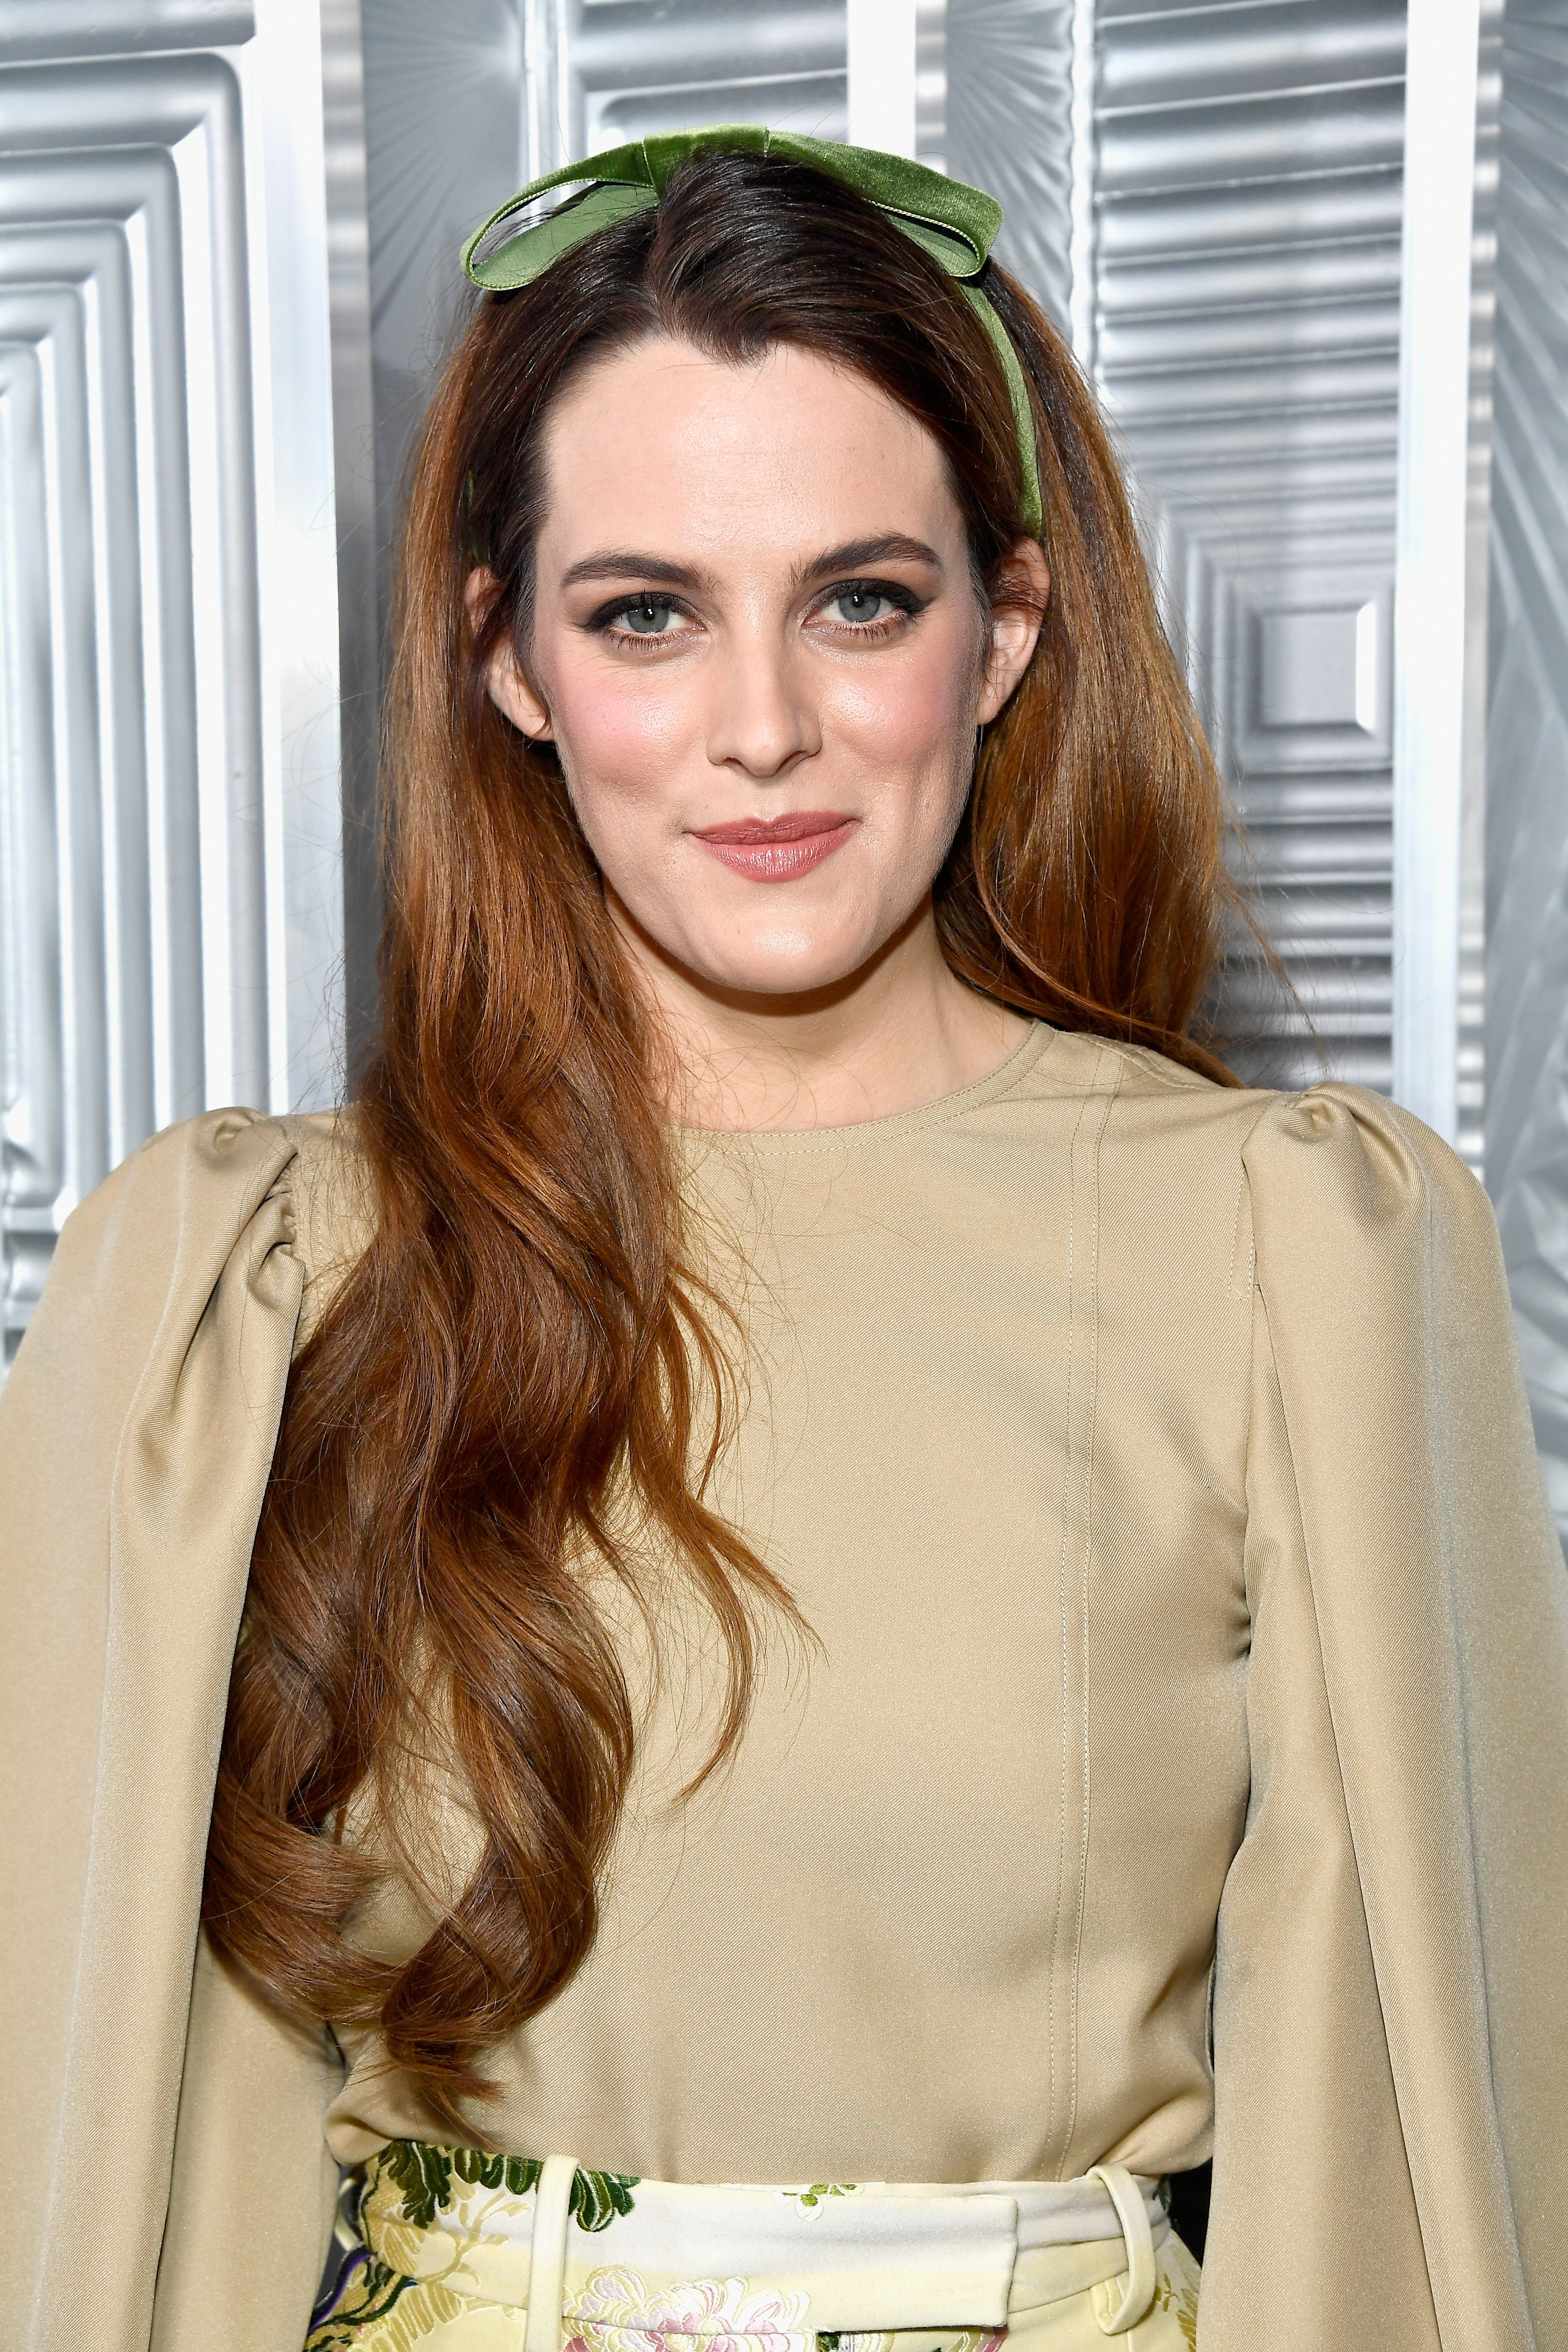 Riley Keough attends ELLE's 24th Annual Women in Hollywood Celebration at Four Seasons Hotel Los Angeles at Beverly Hills on October 16, 2017 in Los Angeles, California   Photo: Getty Images